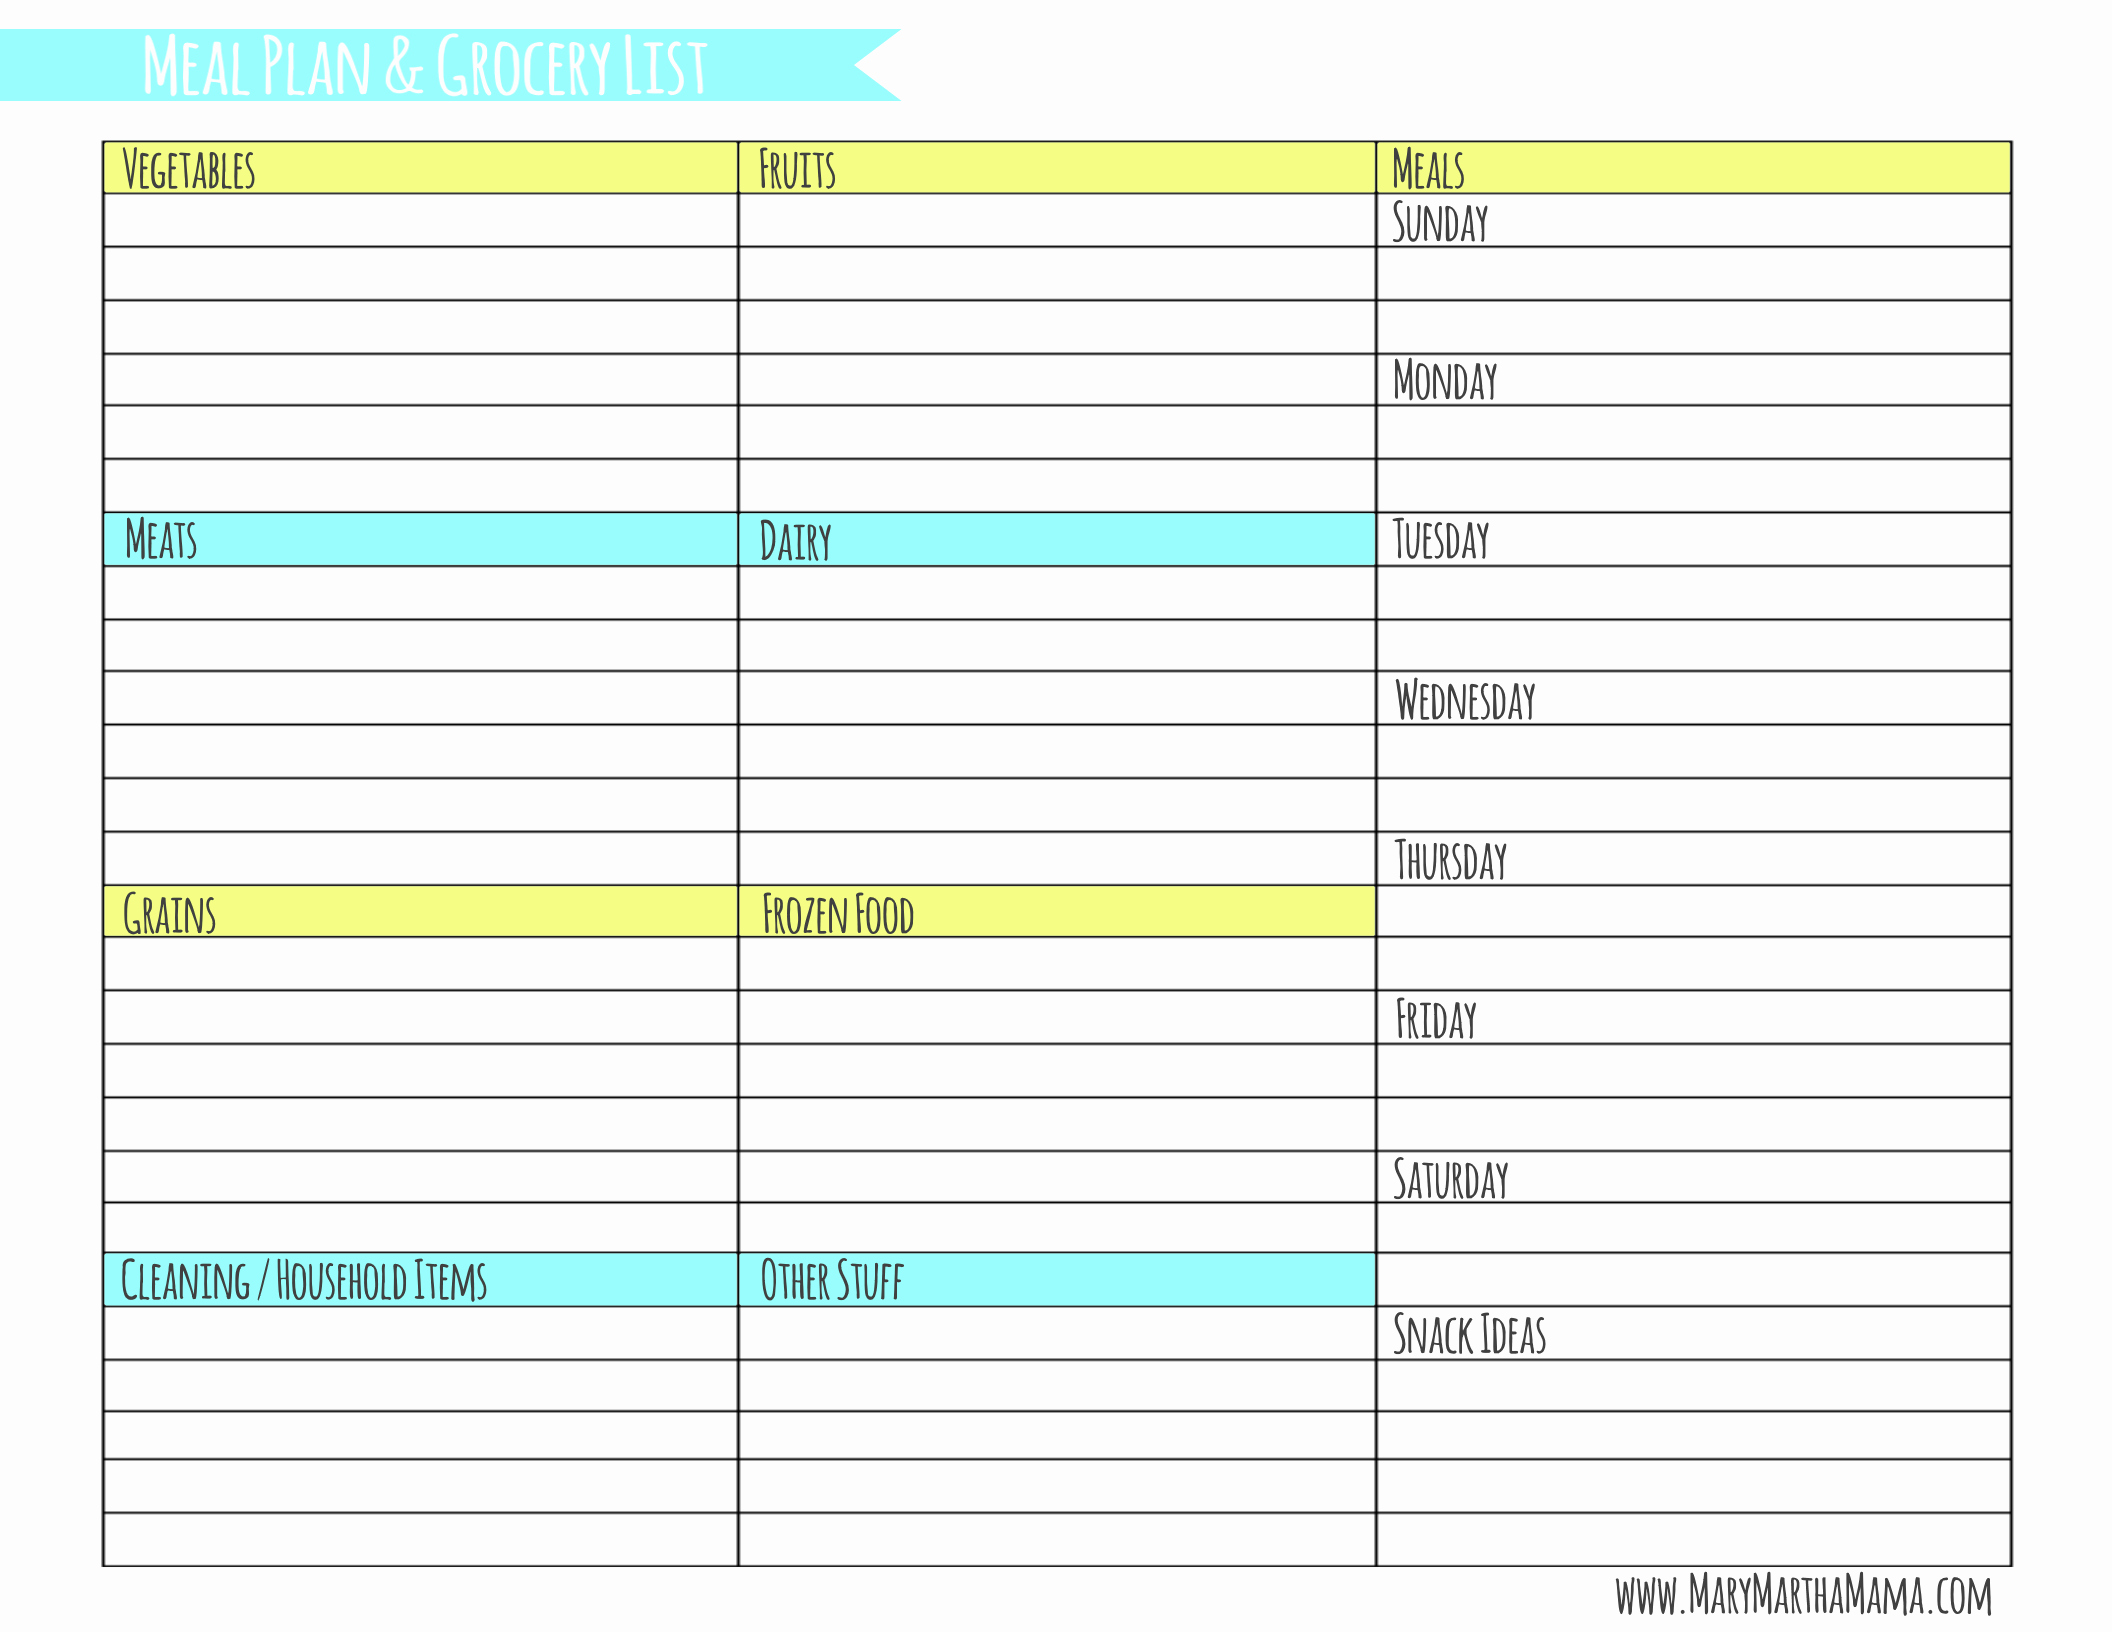 Weekly Meal Plan Template Free Unique Weekly Meal Planner Template with Grocery List – Mary